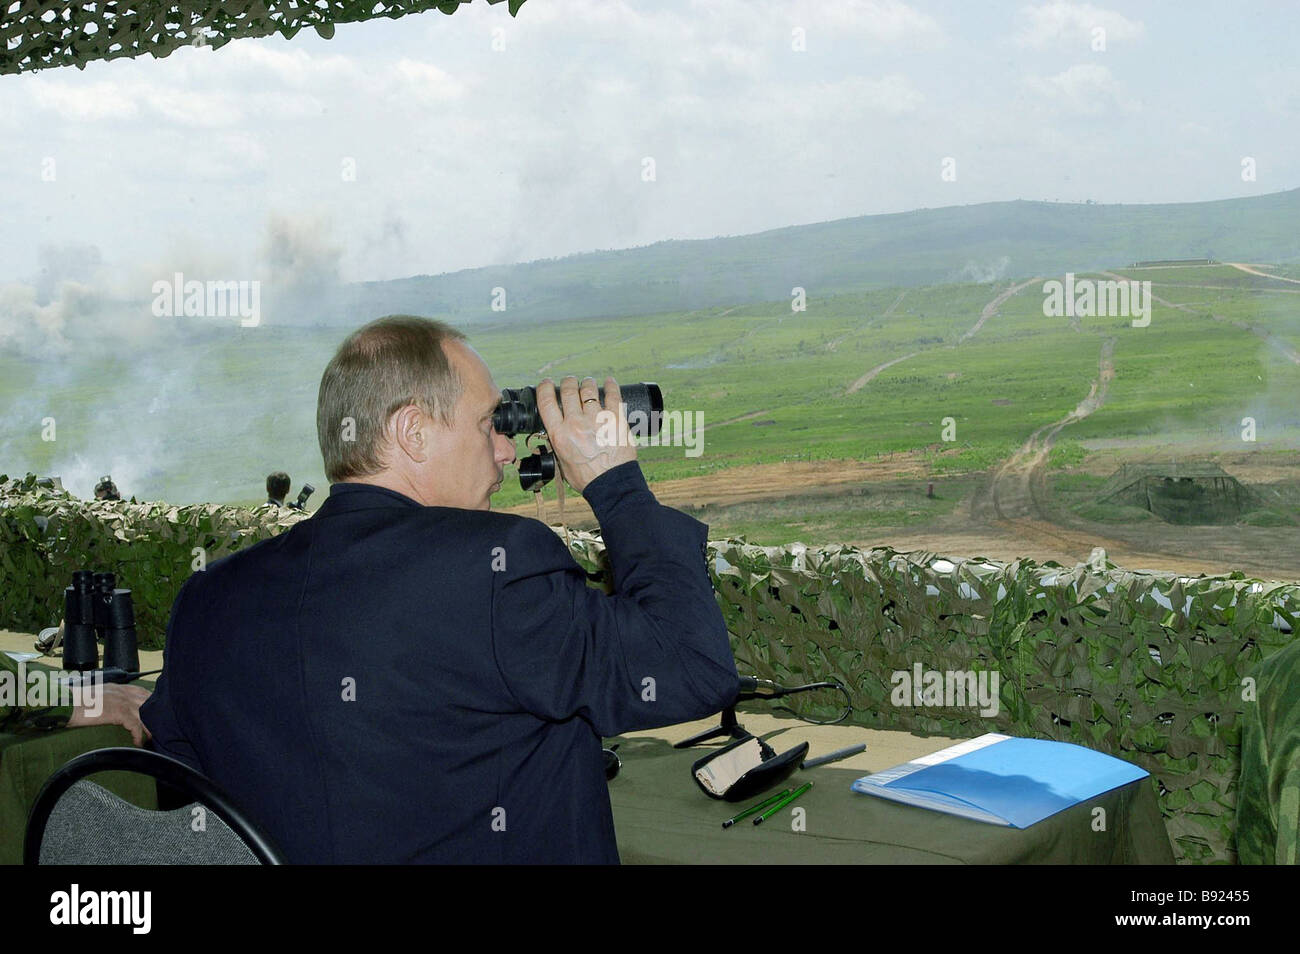 Russian President Vladimir Putin during the Mobility 2004 exercises at the Sergeyevsky training field - Stock Image